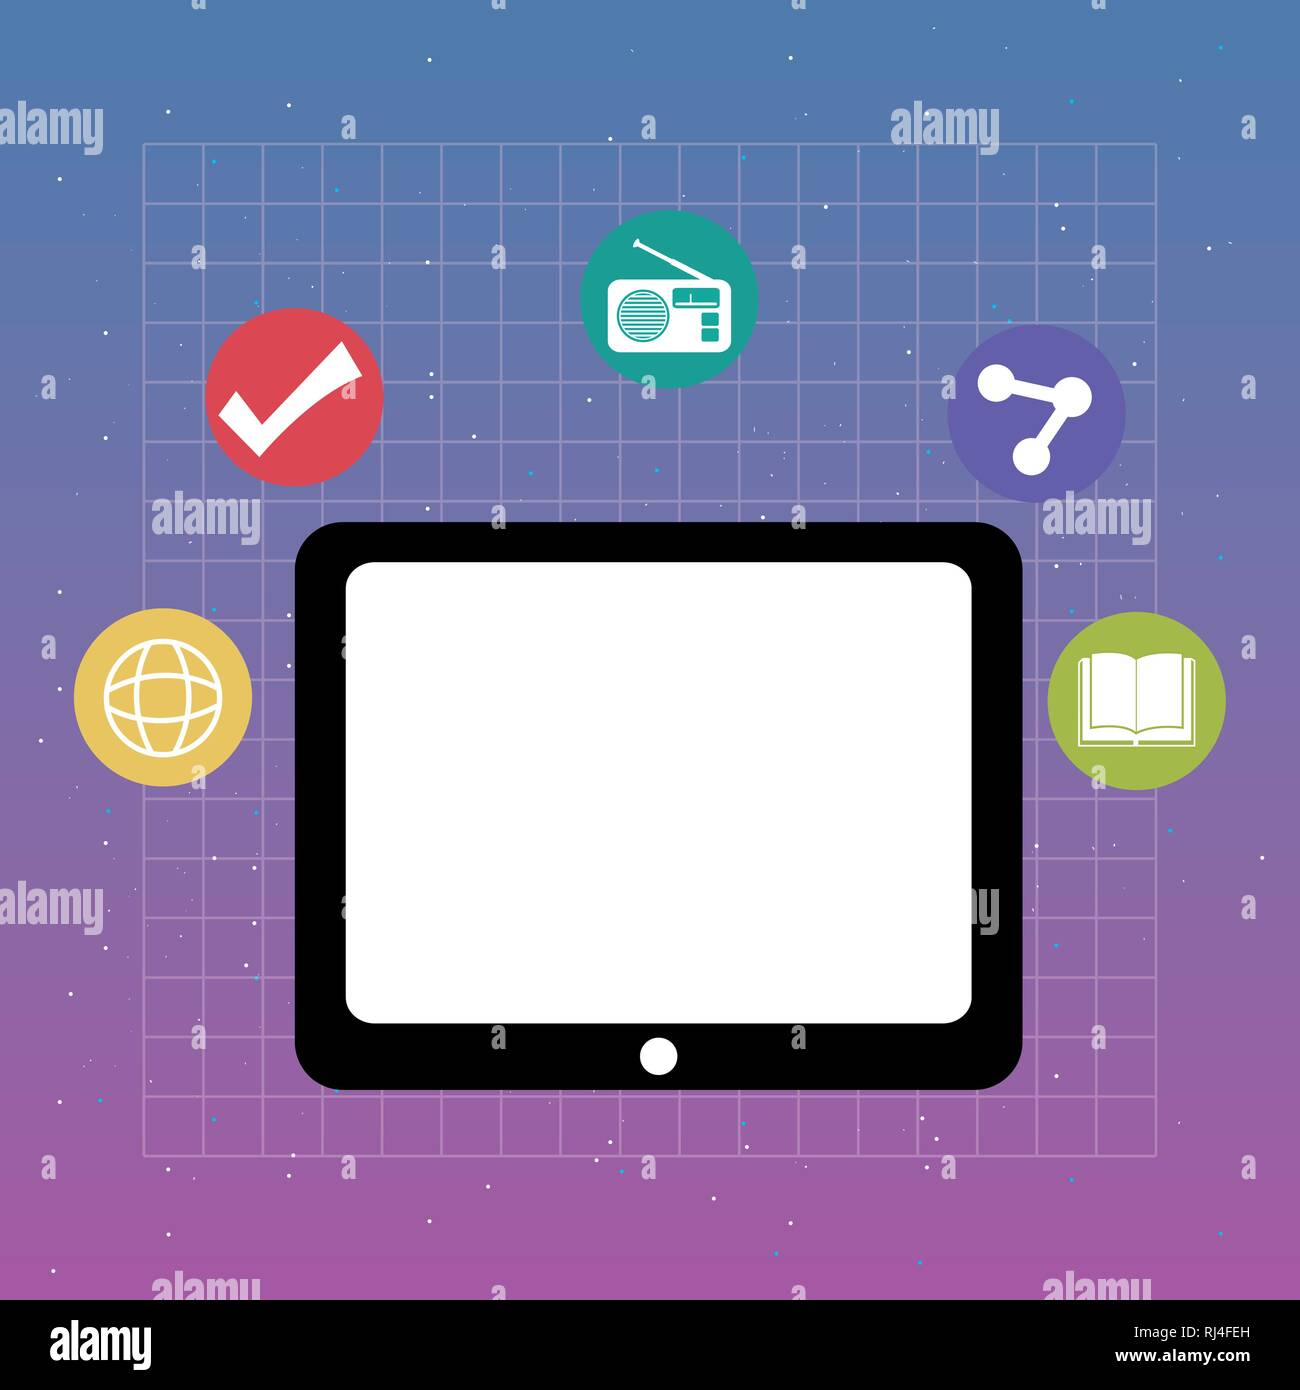 Tablette avec menu applications vector illustration design Photo Stock